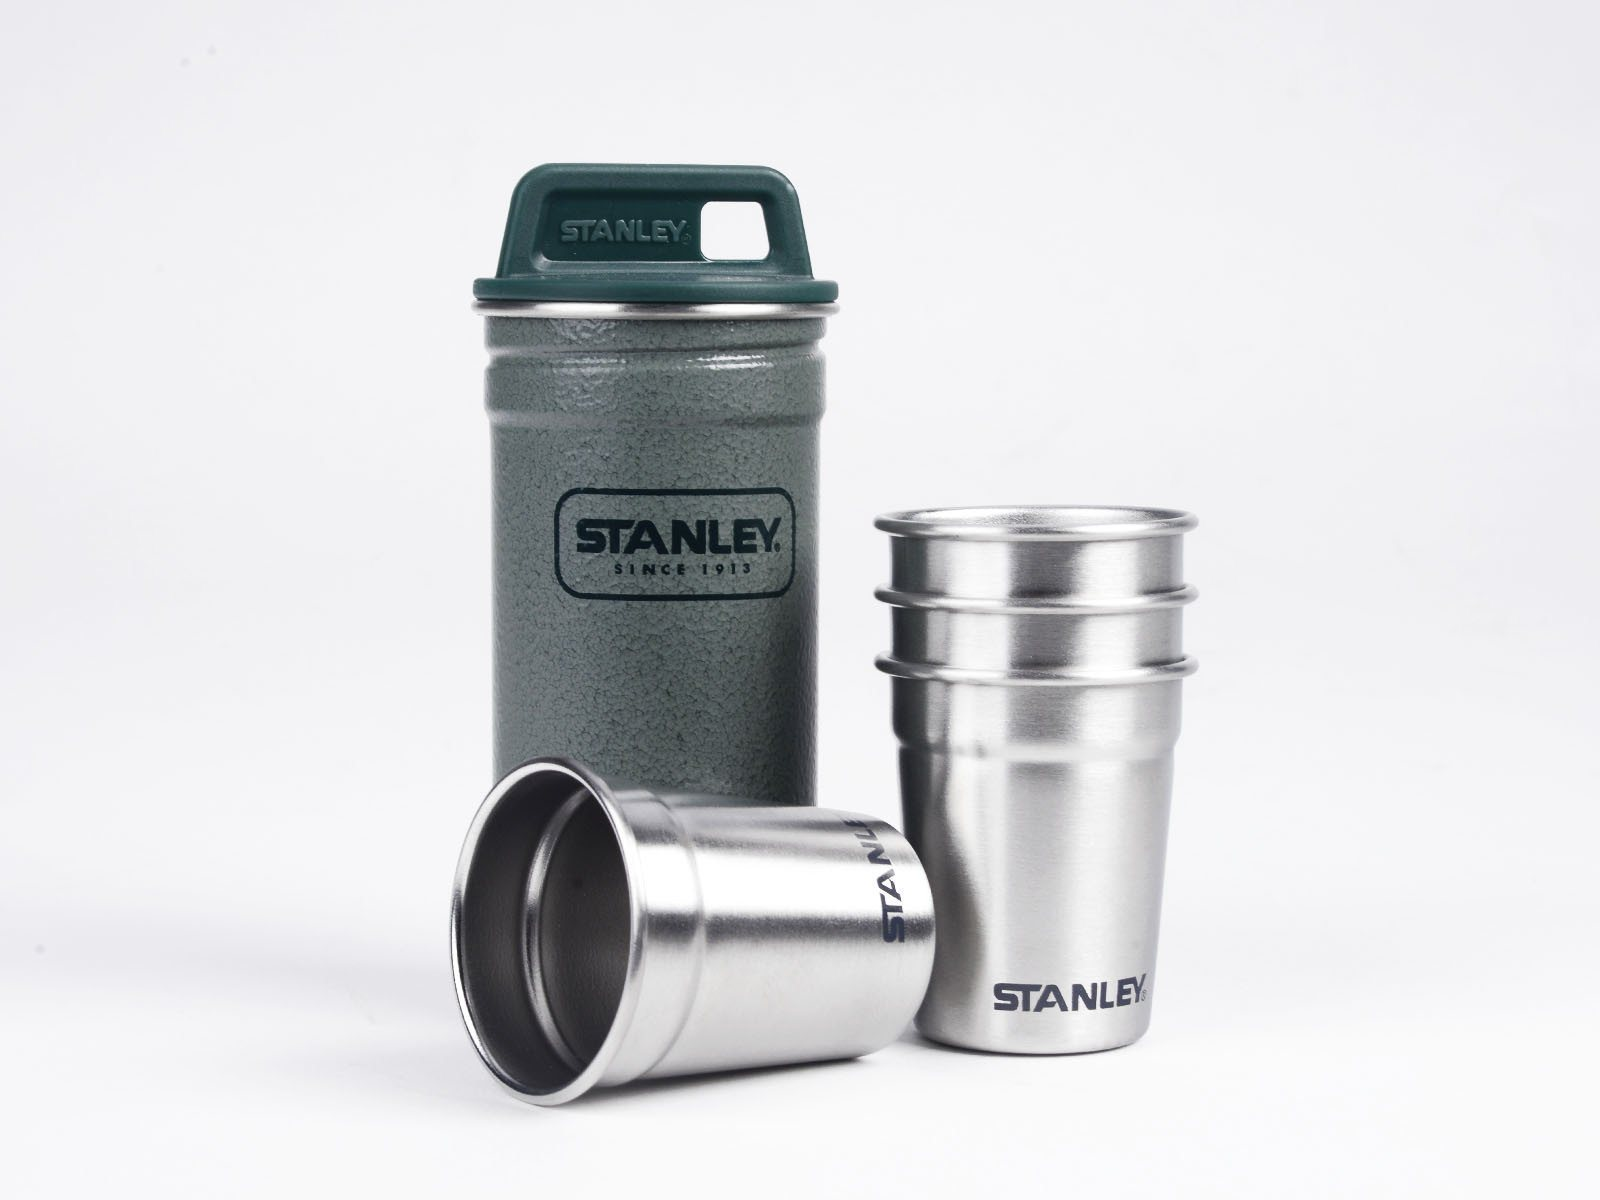 Stanley Adventure Shot Glass Set, grøn